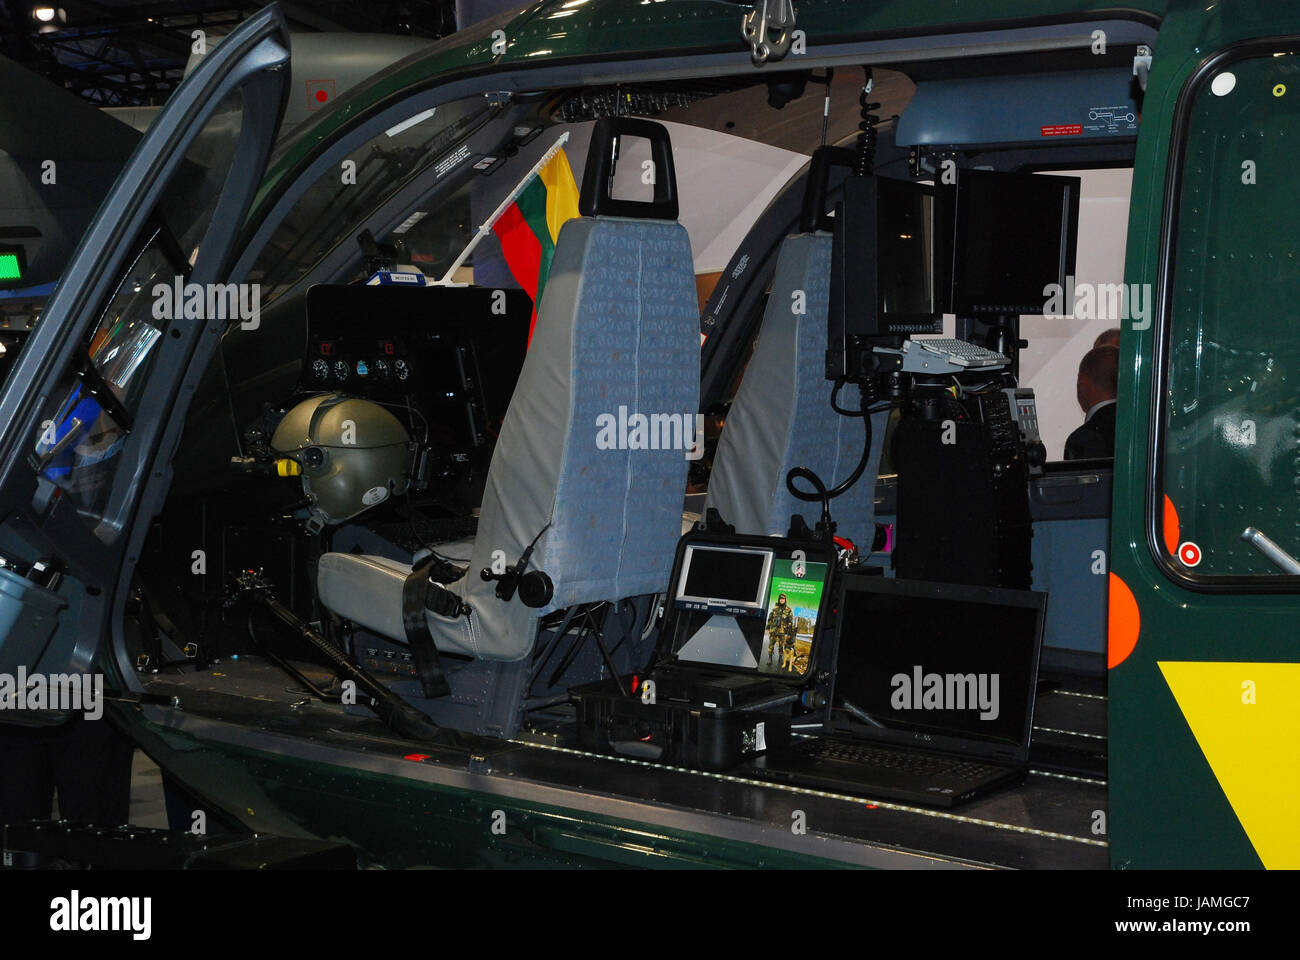 The military,helicopter,inside,technical equipment, - Stock Image